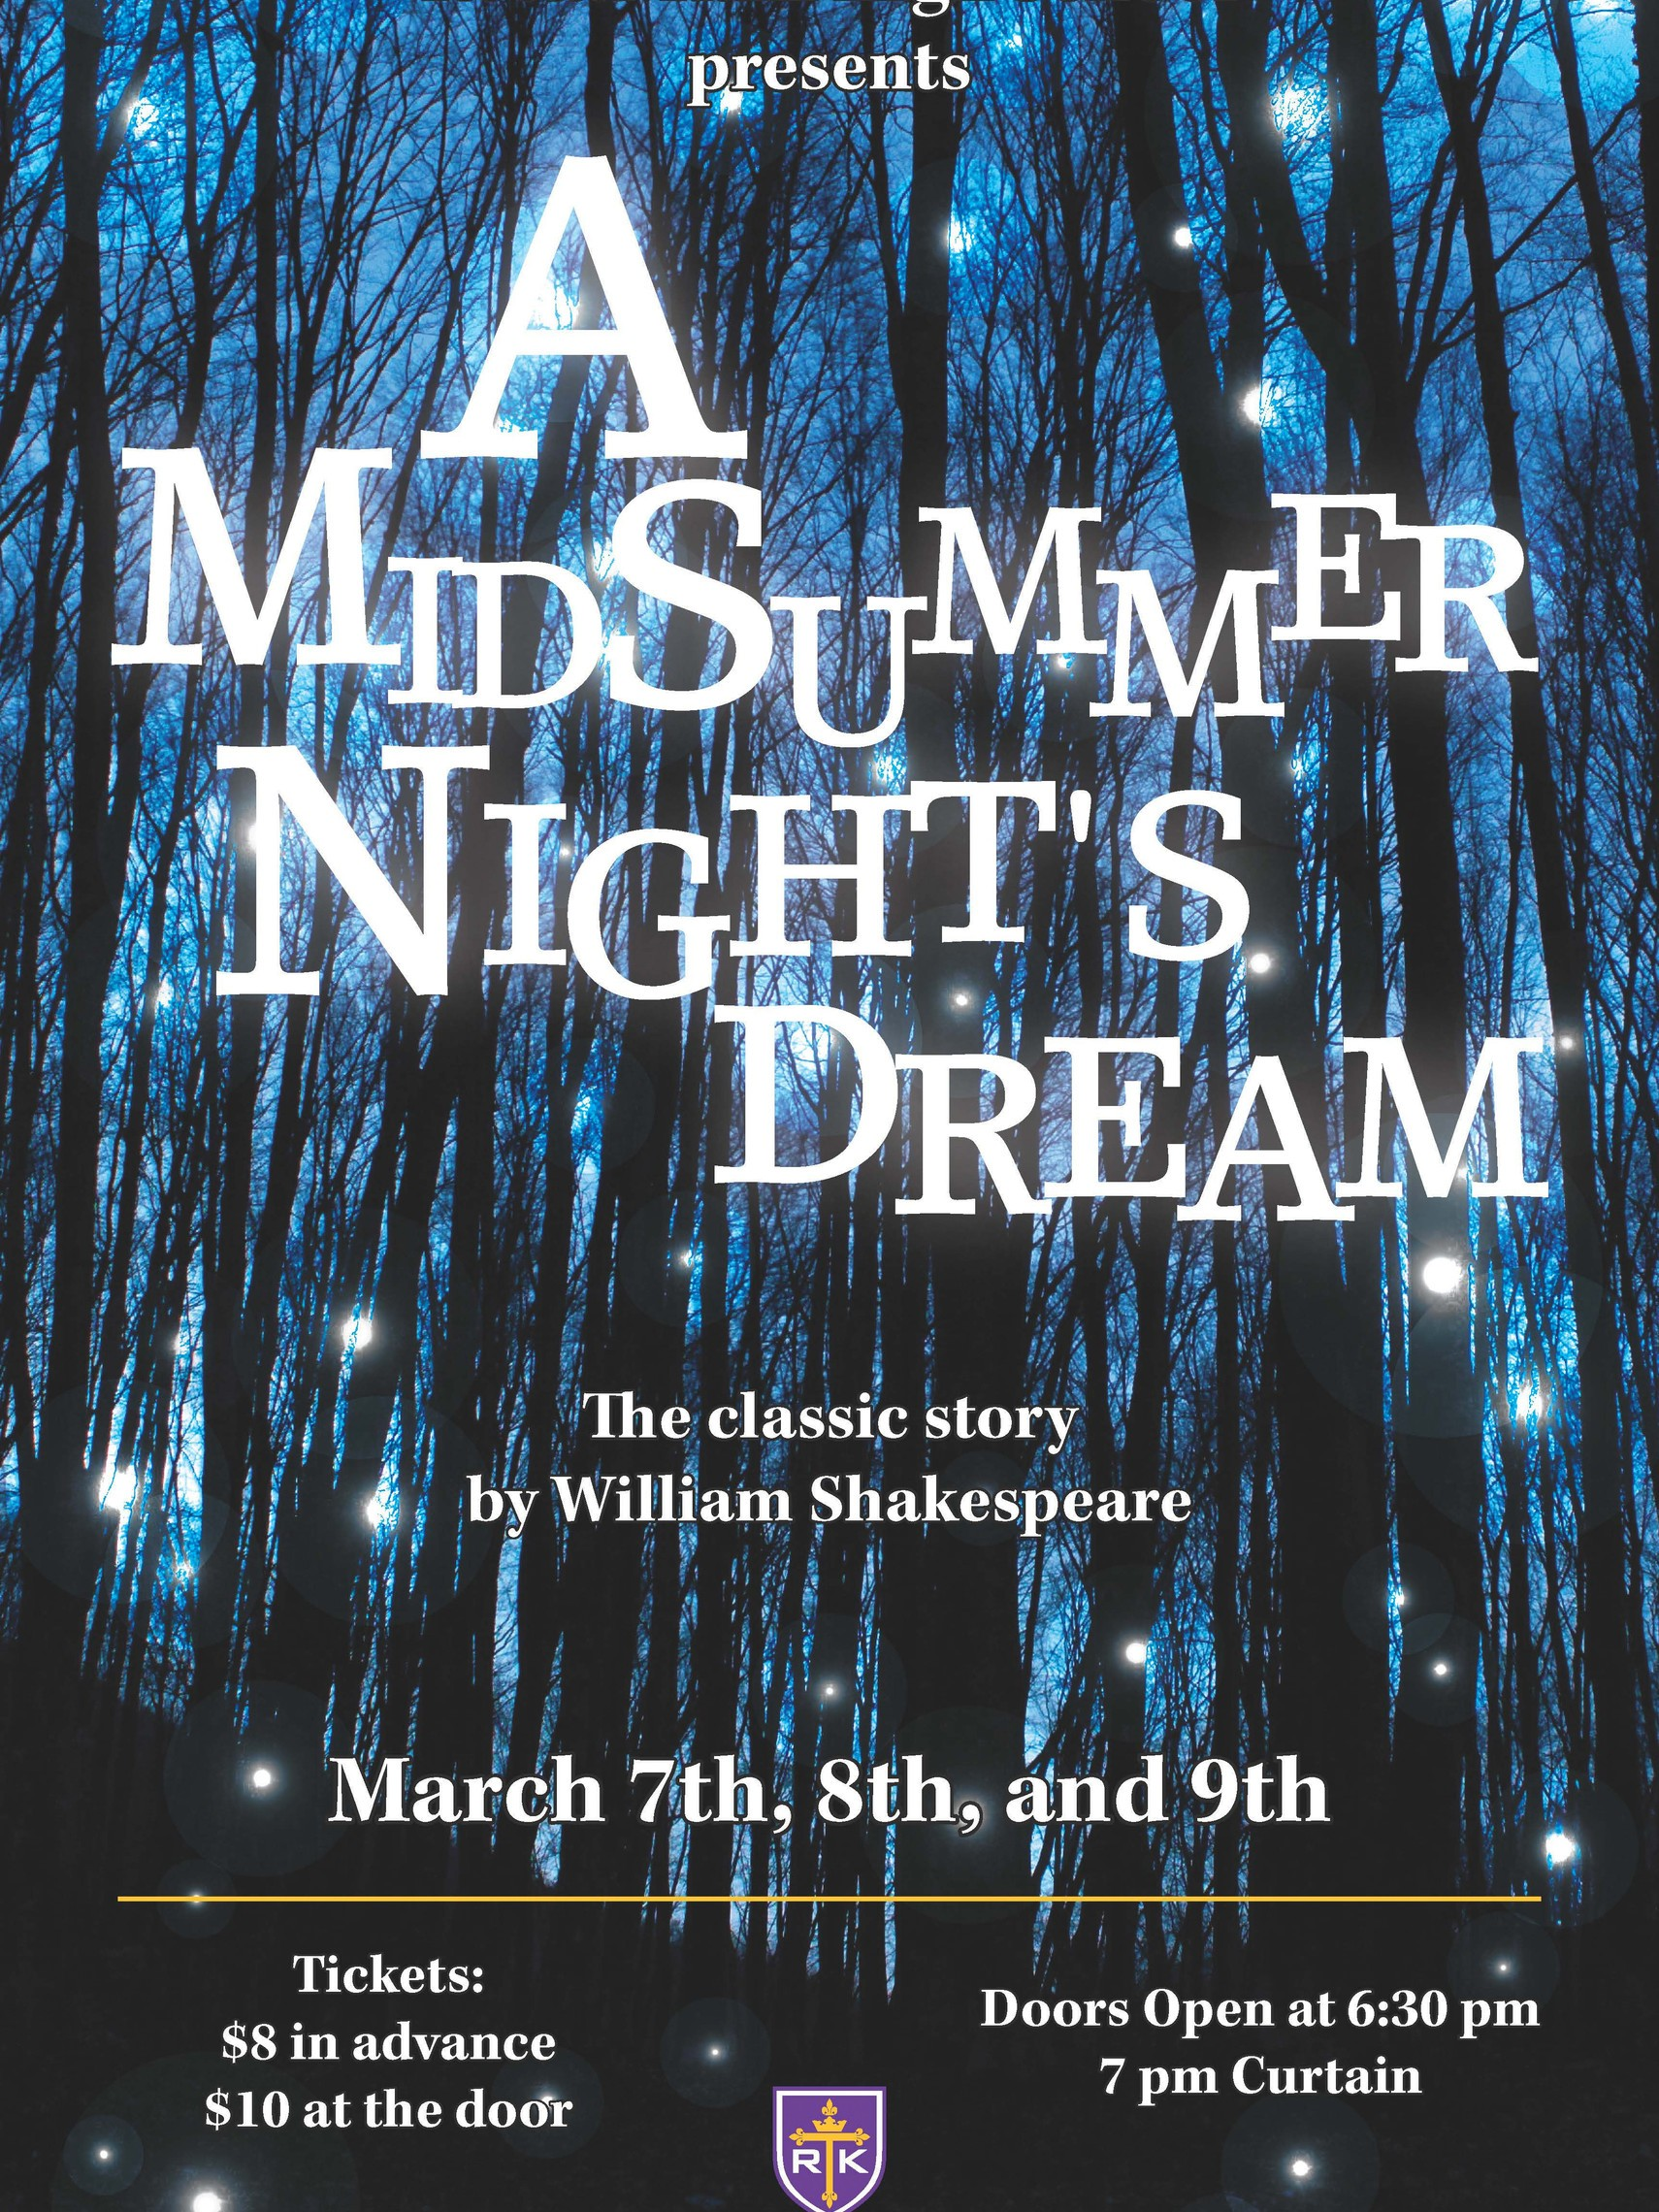 1 1 A Midsummer Nights Dream Poster 11x17jan 2019 3 Page 2